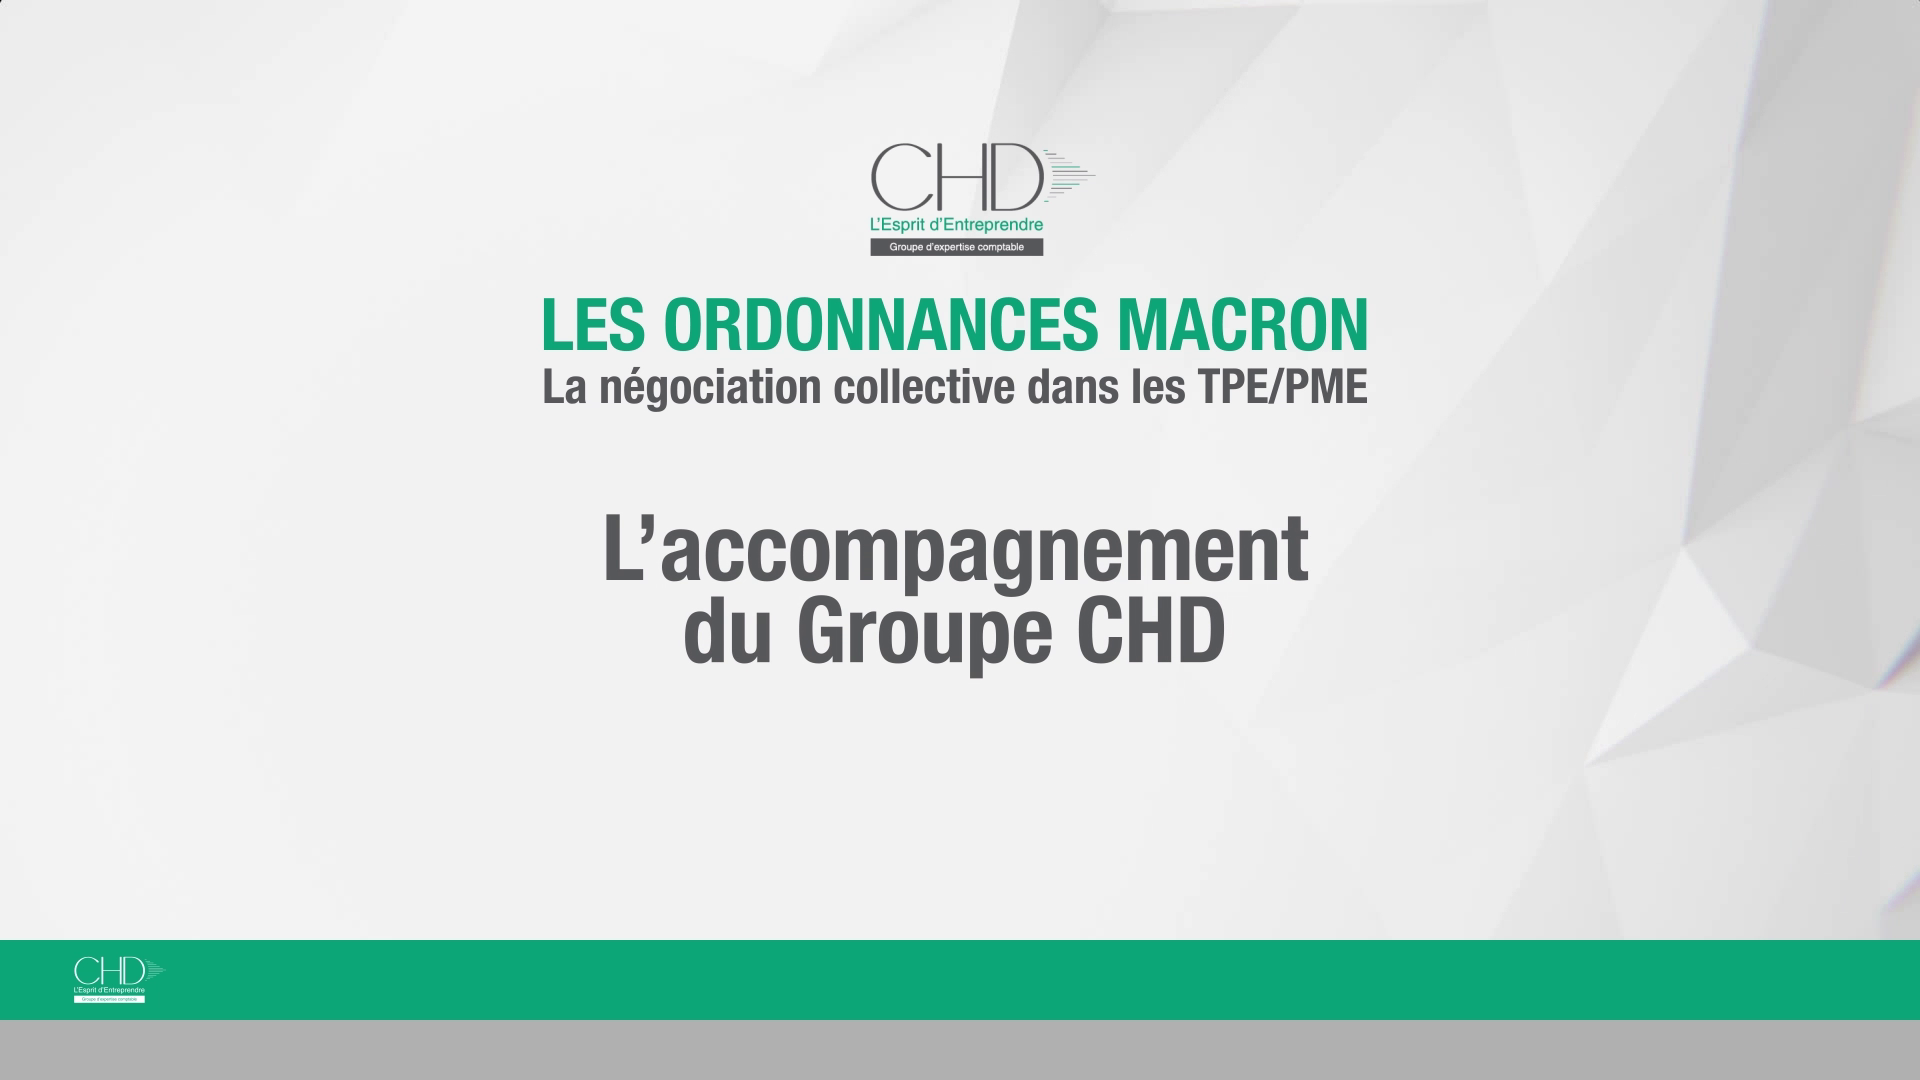 ordonnances-macron-accompagnement-groupe-chd